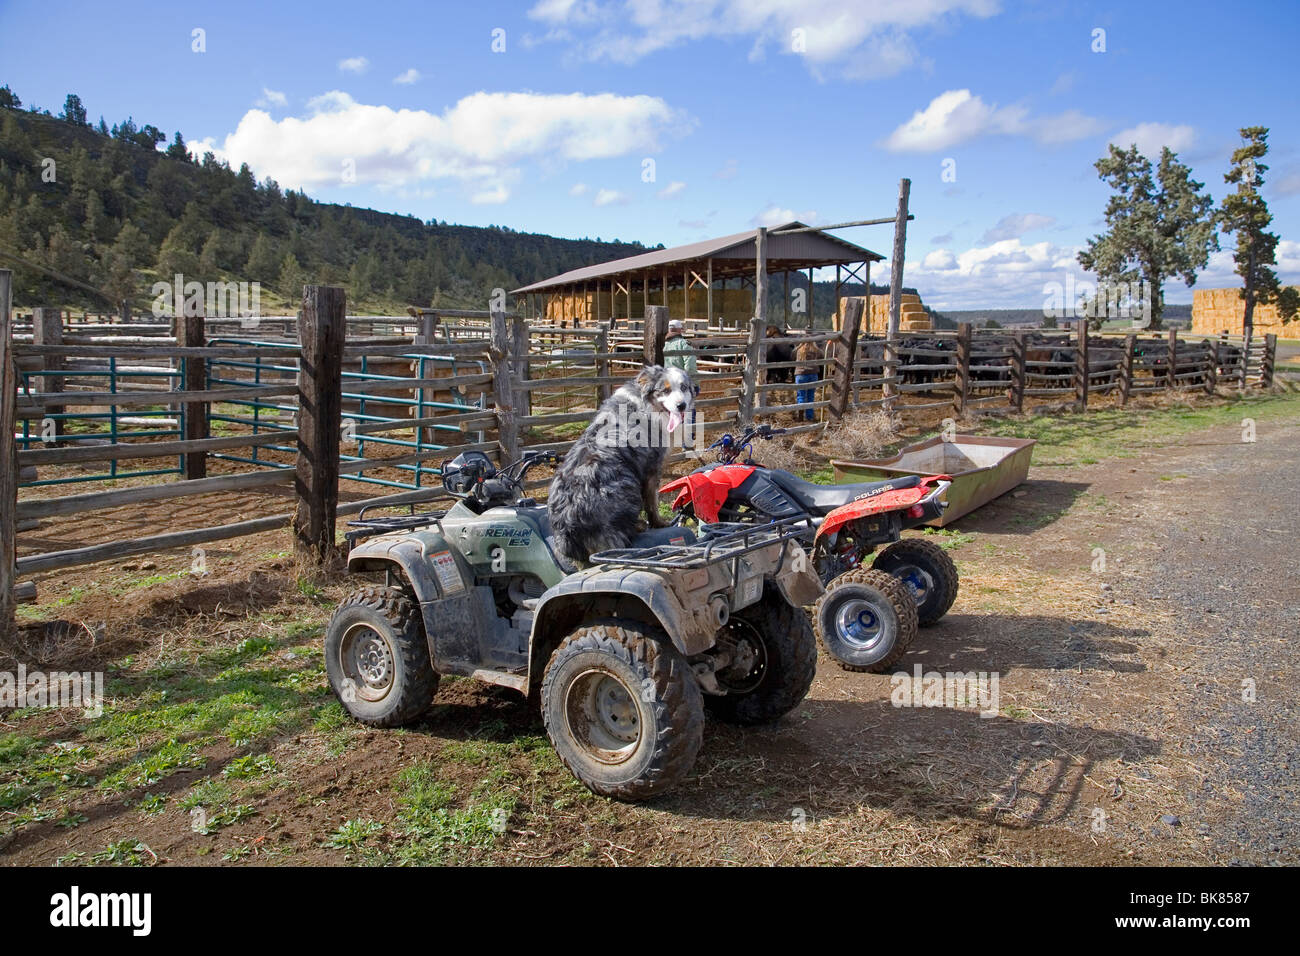 An Australian shepherd herding dog on an ATV All Terrain Vehicle - Stock Image